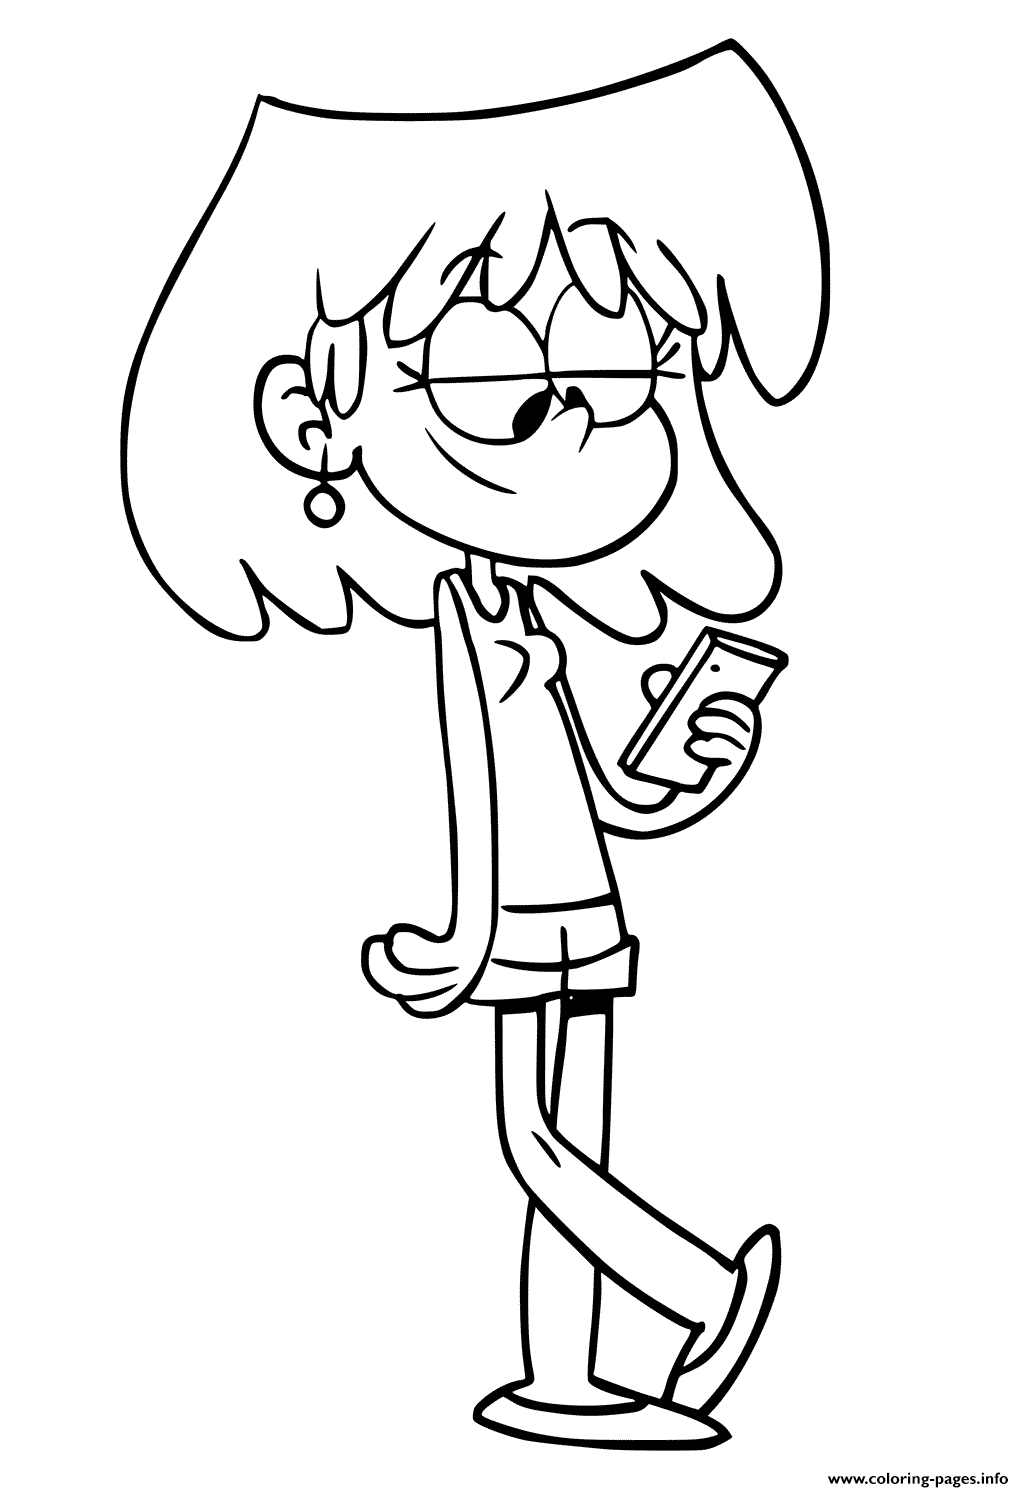 Printable Lori Loud coloring pages